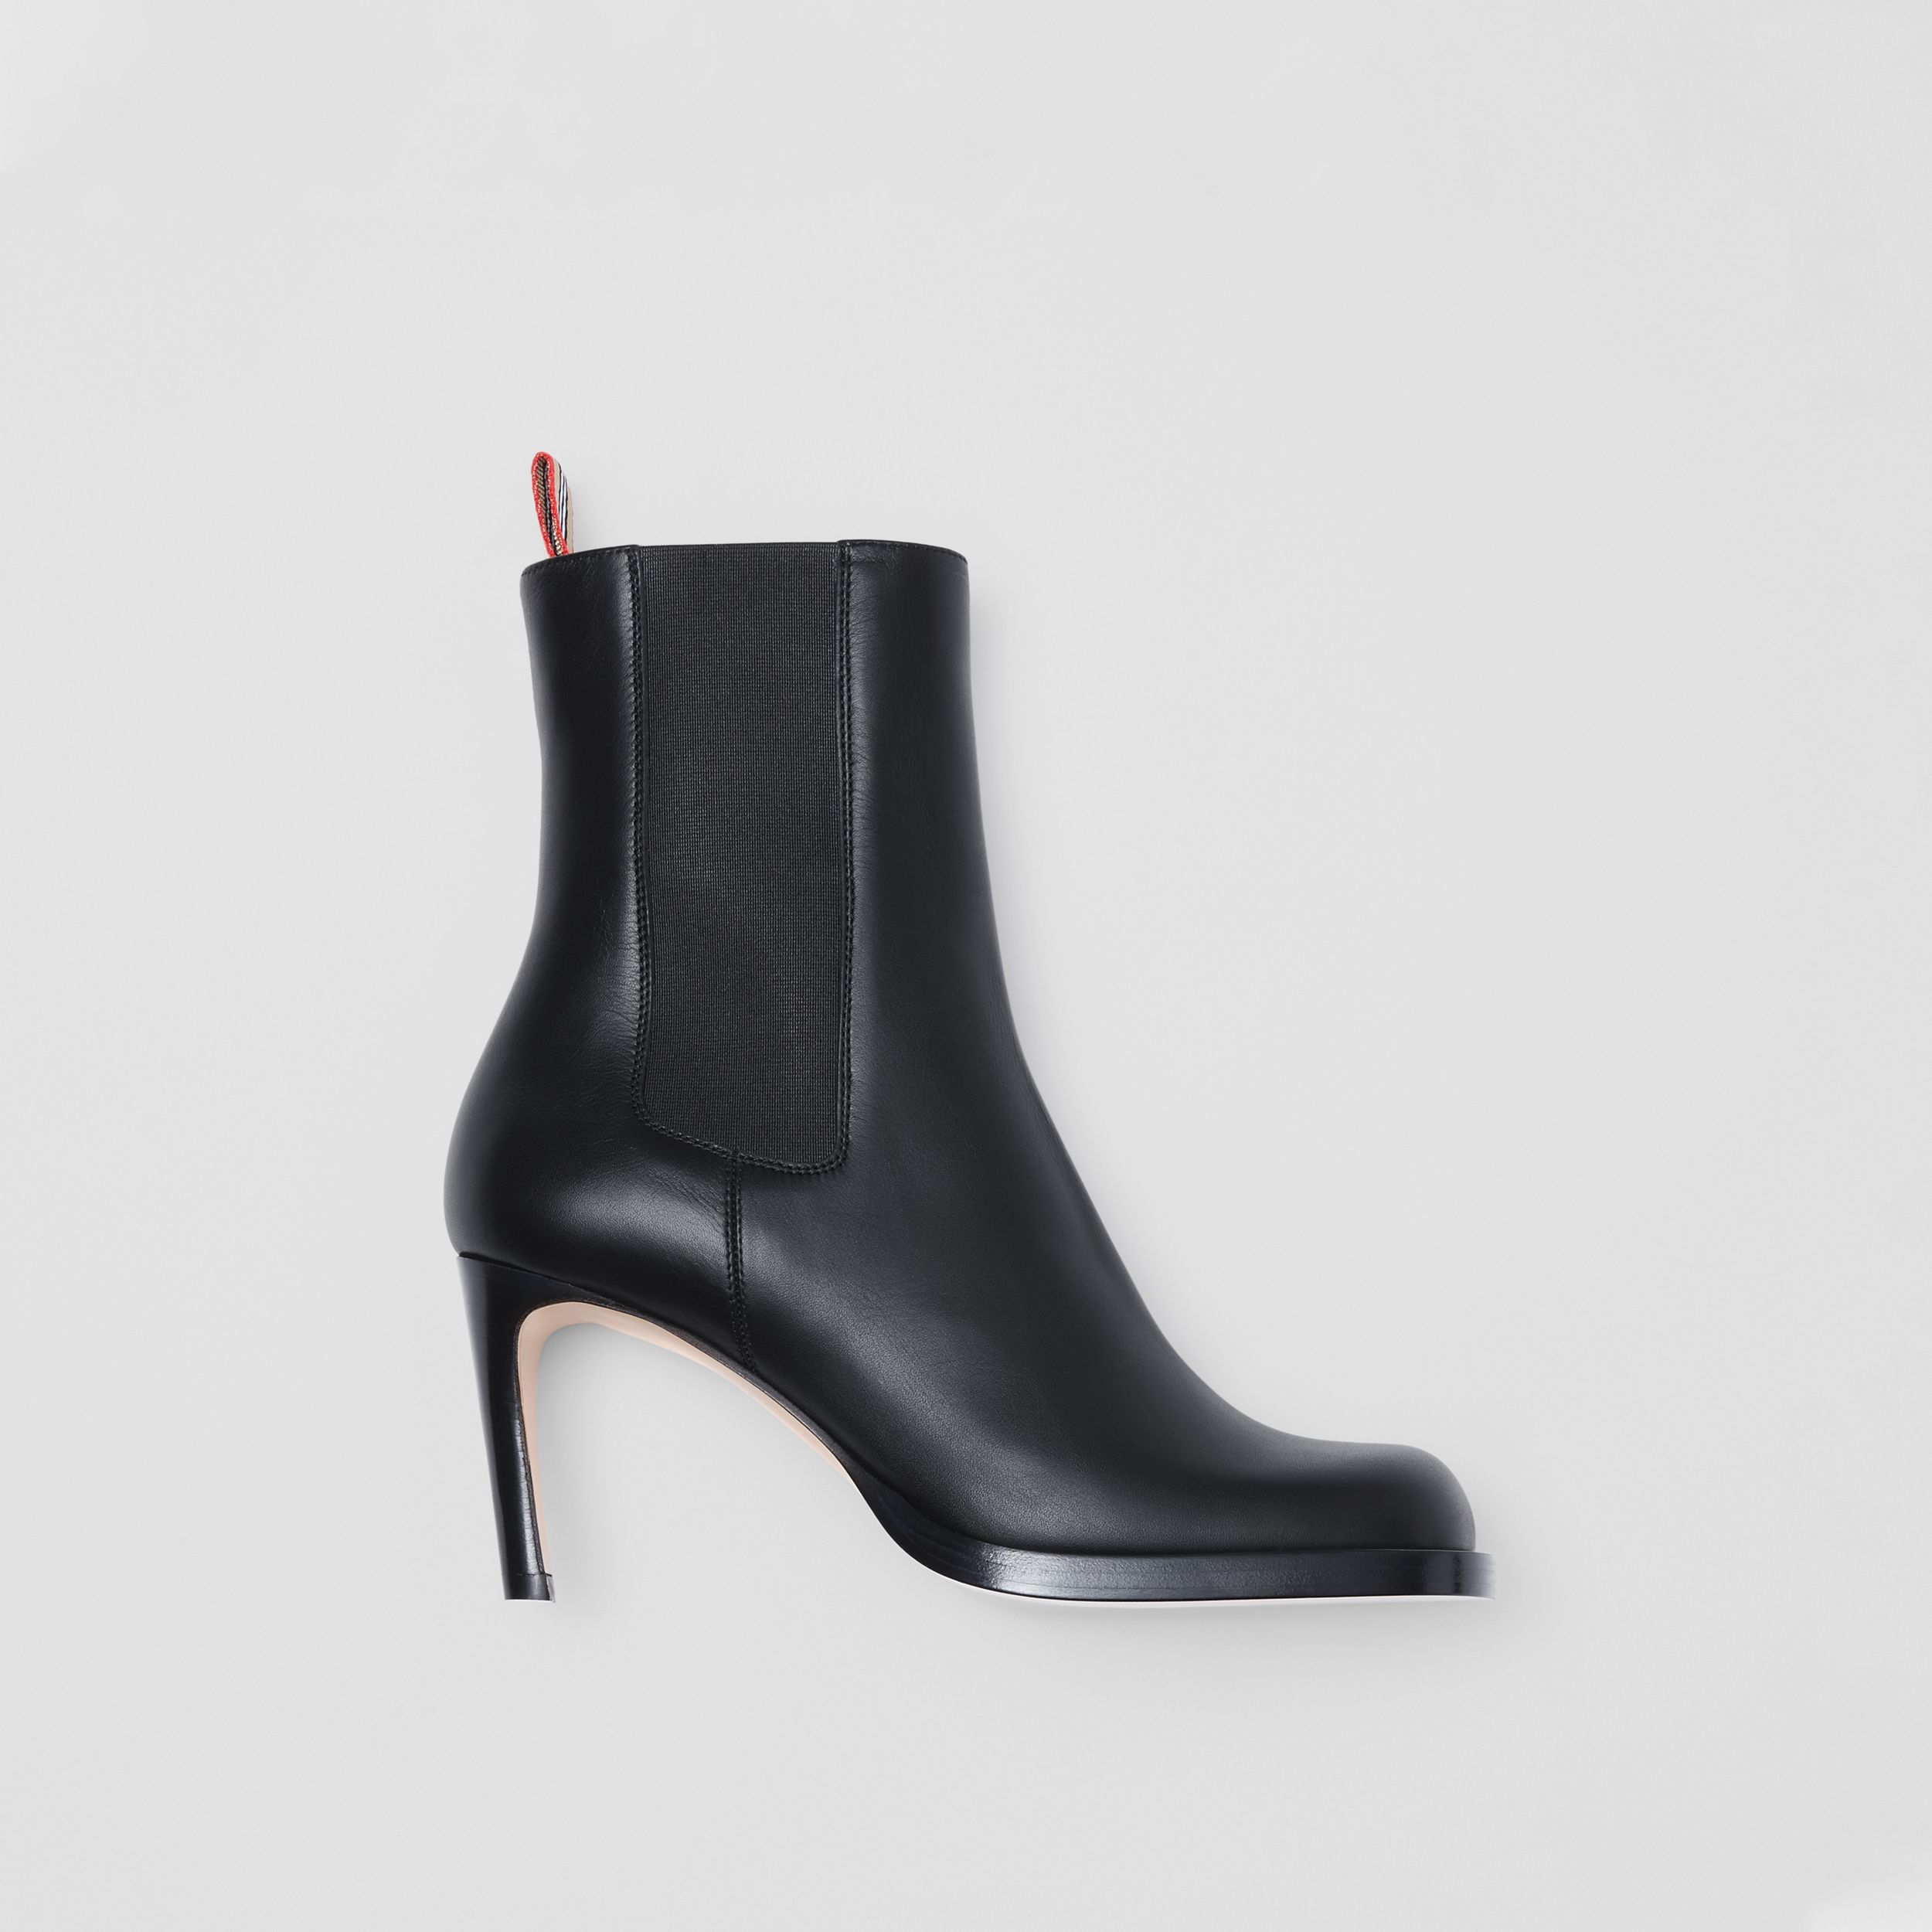 Icon Stripe Detail Leather Ankle Boots in Black - Women | Burberry - 1